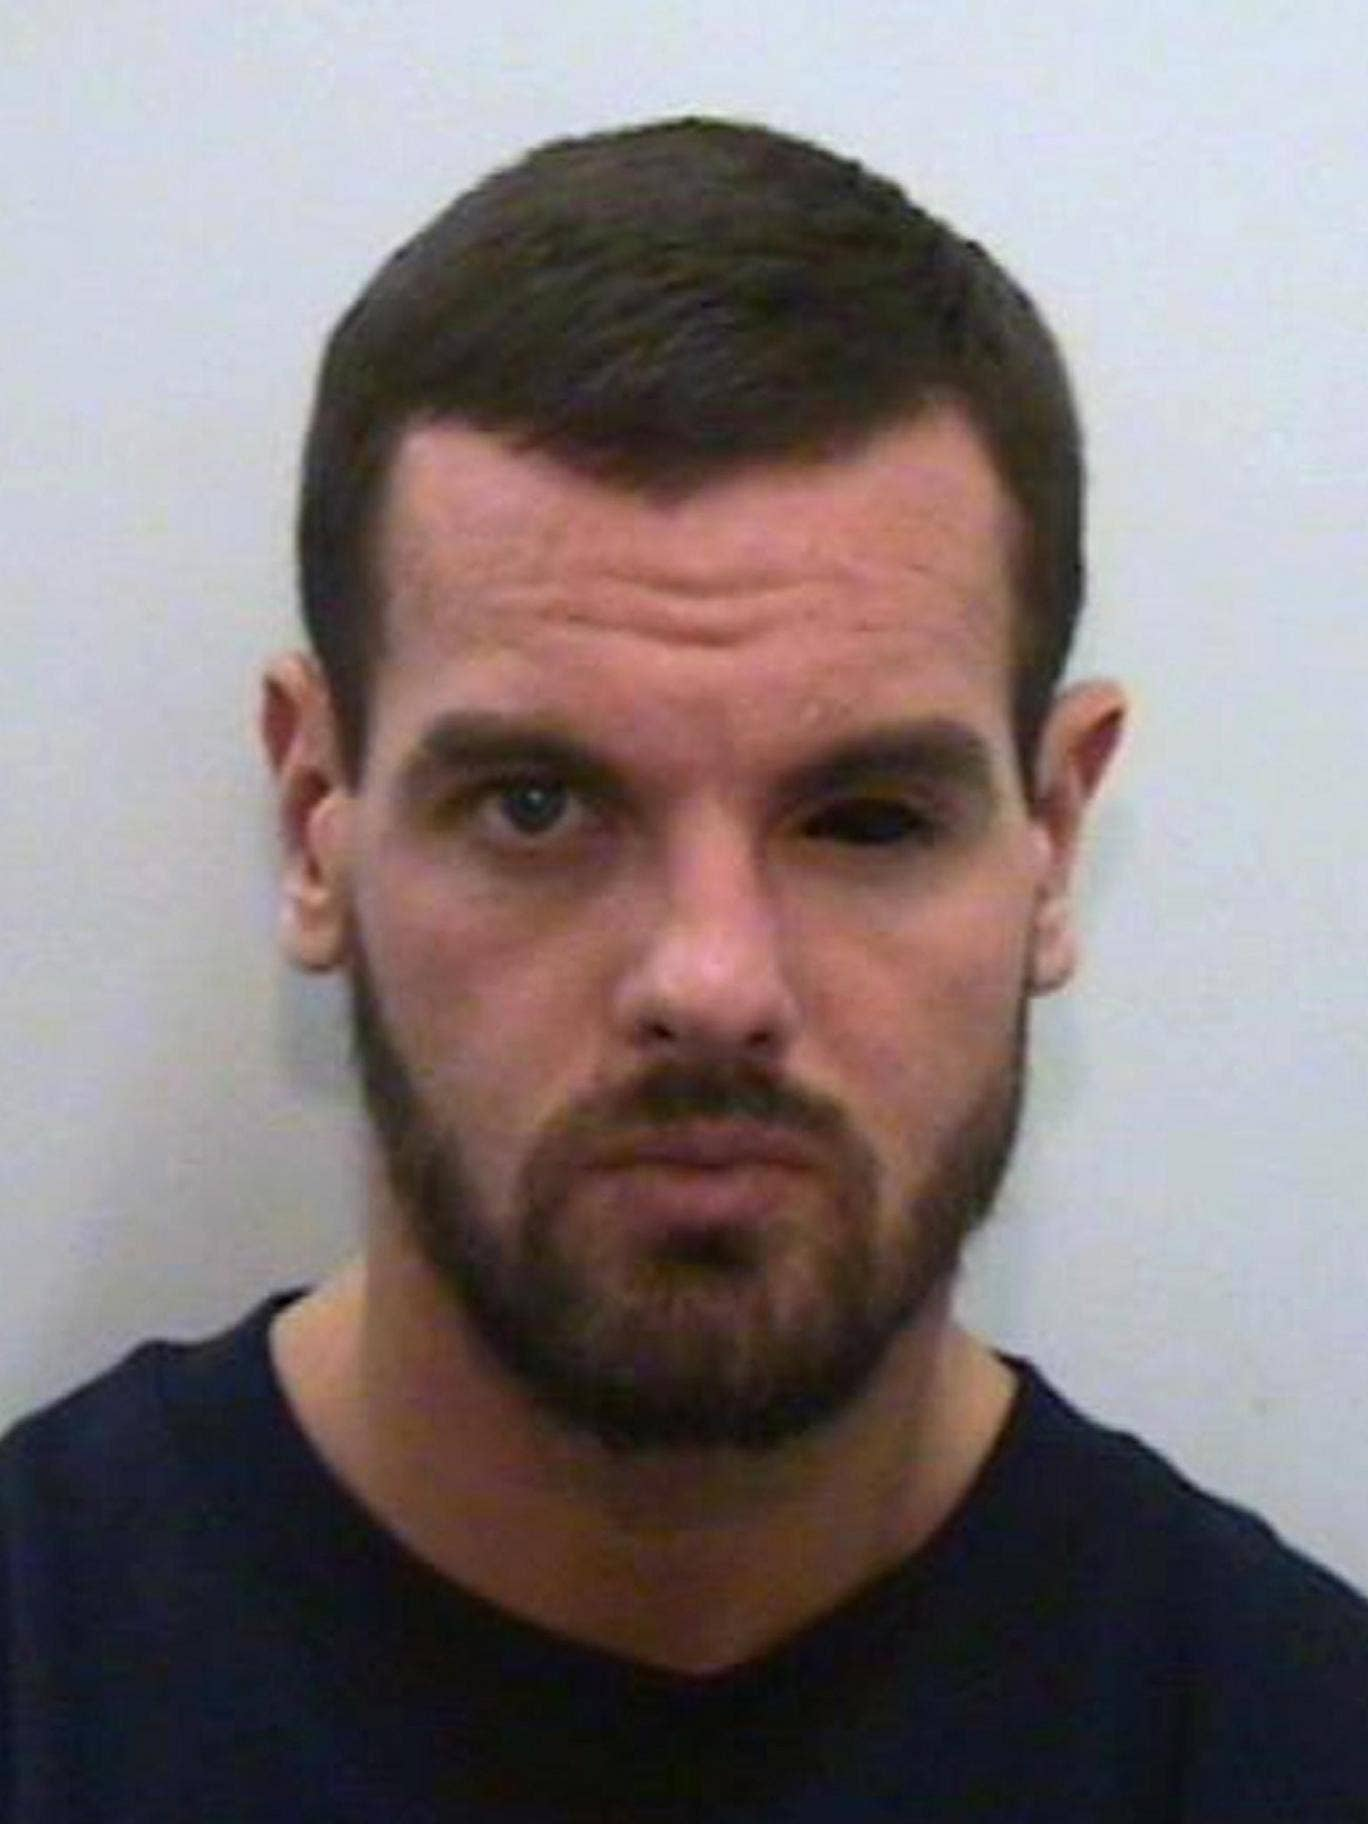 Greater Manchester Police handout photo of Dale Cregan who is set to die in prison with a whole life sentence for murdering four people after his long-running trial came to an end today